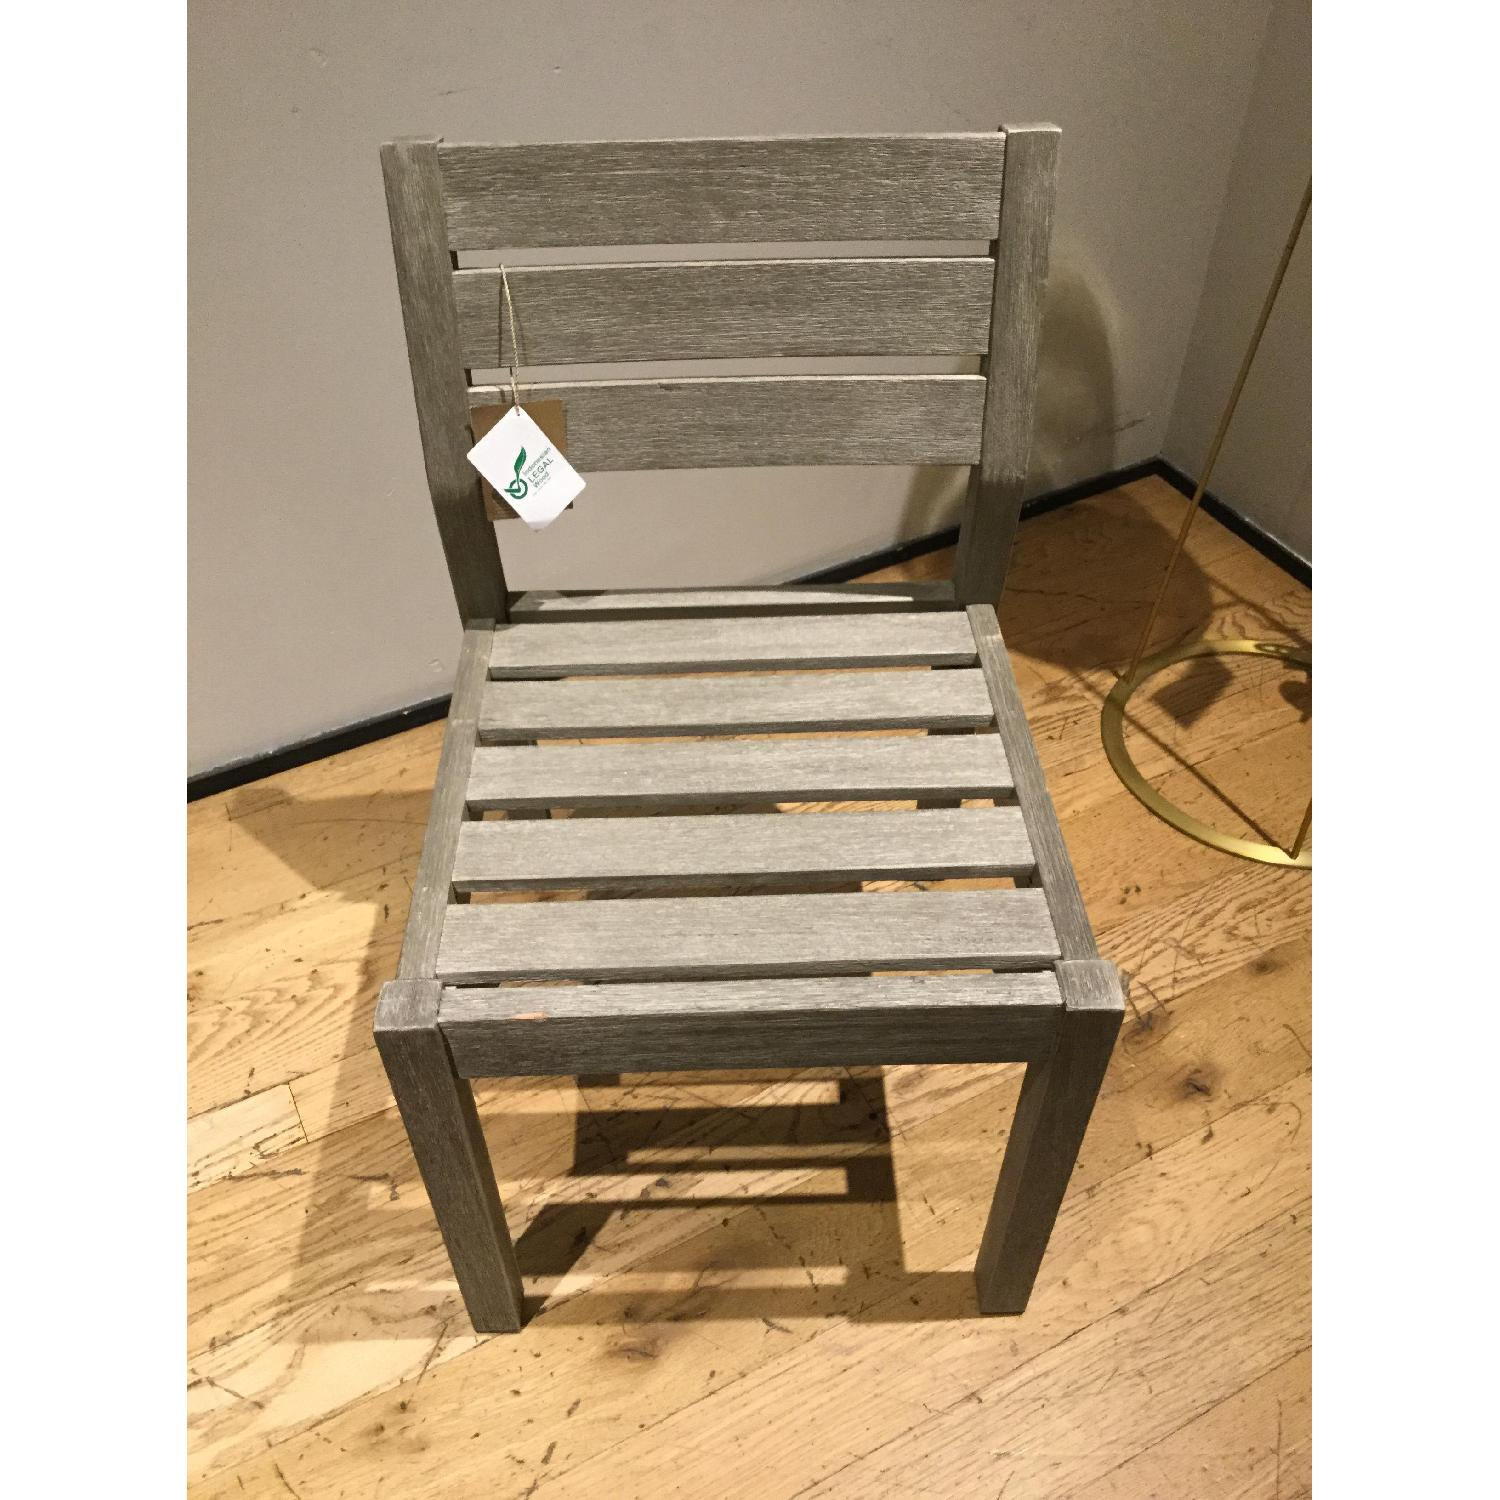 West Elm Portside Dining Chair in Weathered Gray - image-2